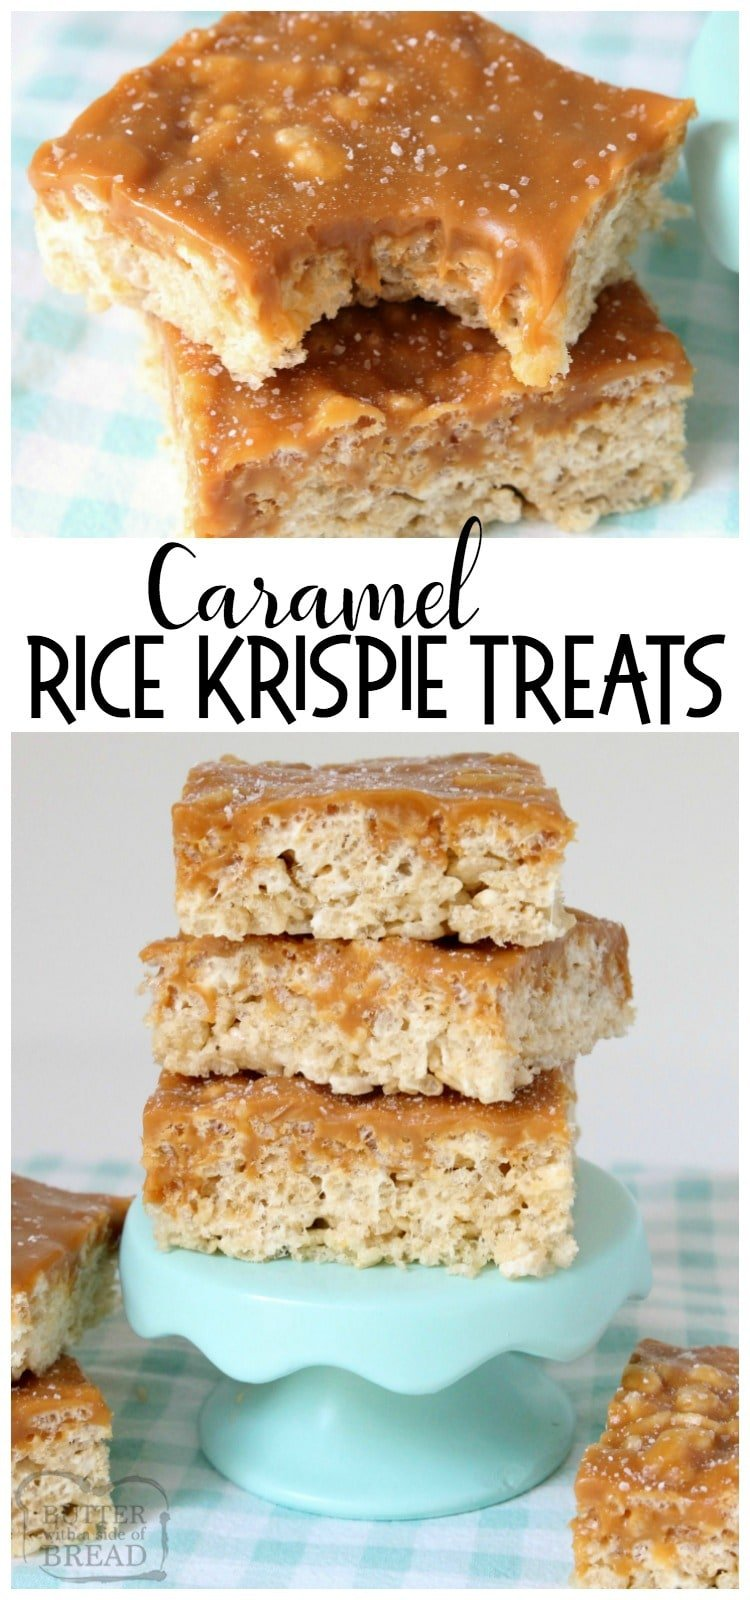 Caramel Rice Krispie Treats are soft, chewy marshmallow squares topped with smooth, rich caramel for an incredible take on rice krispie treats.